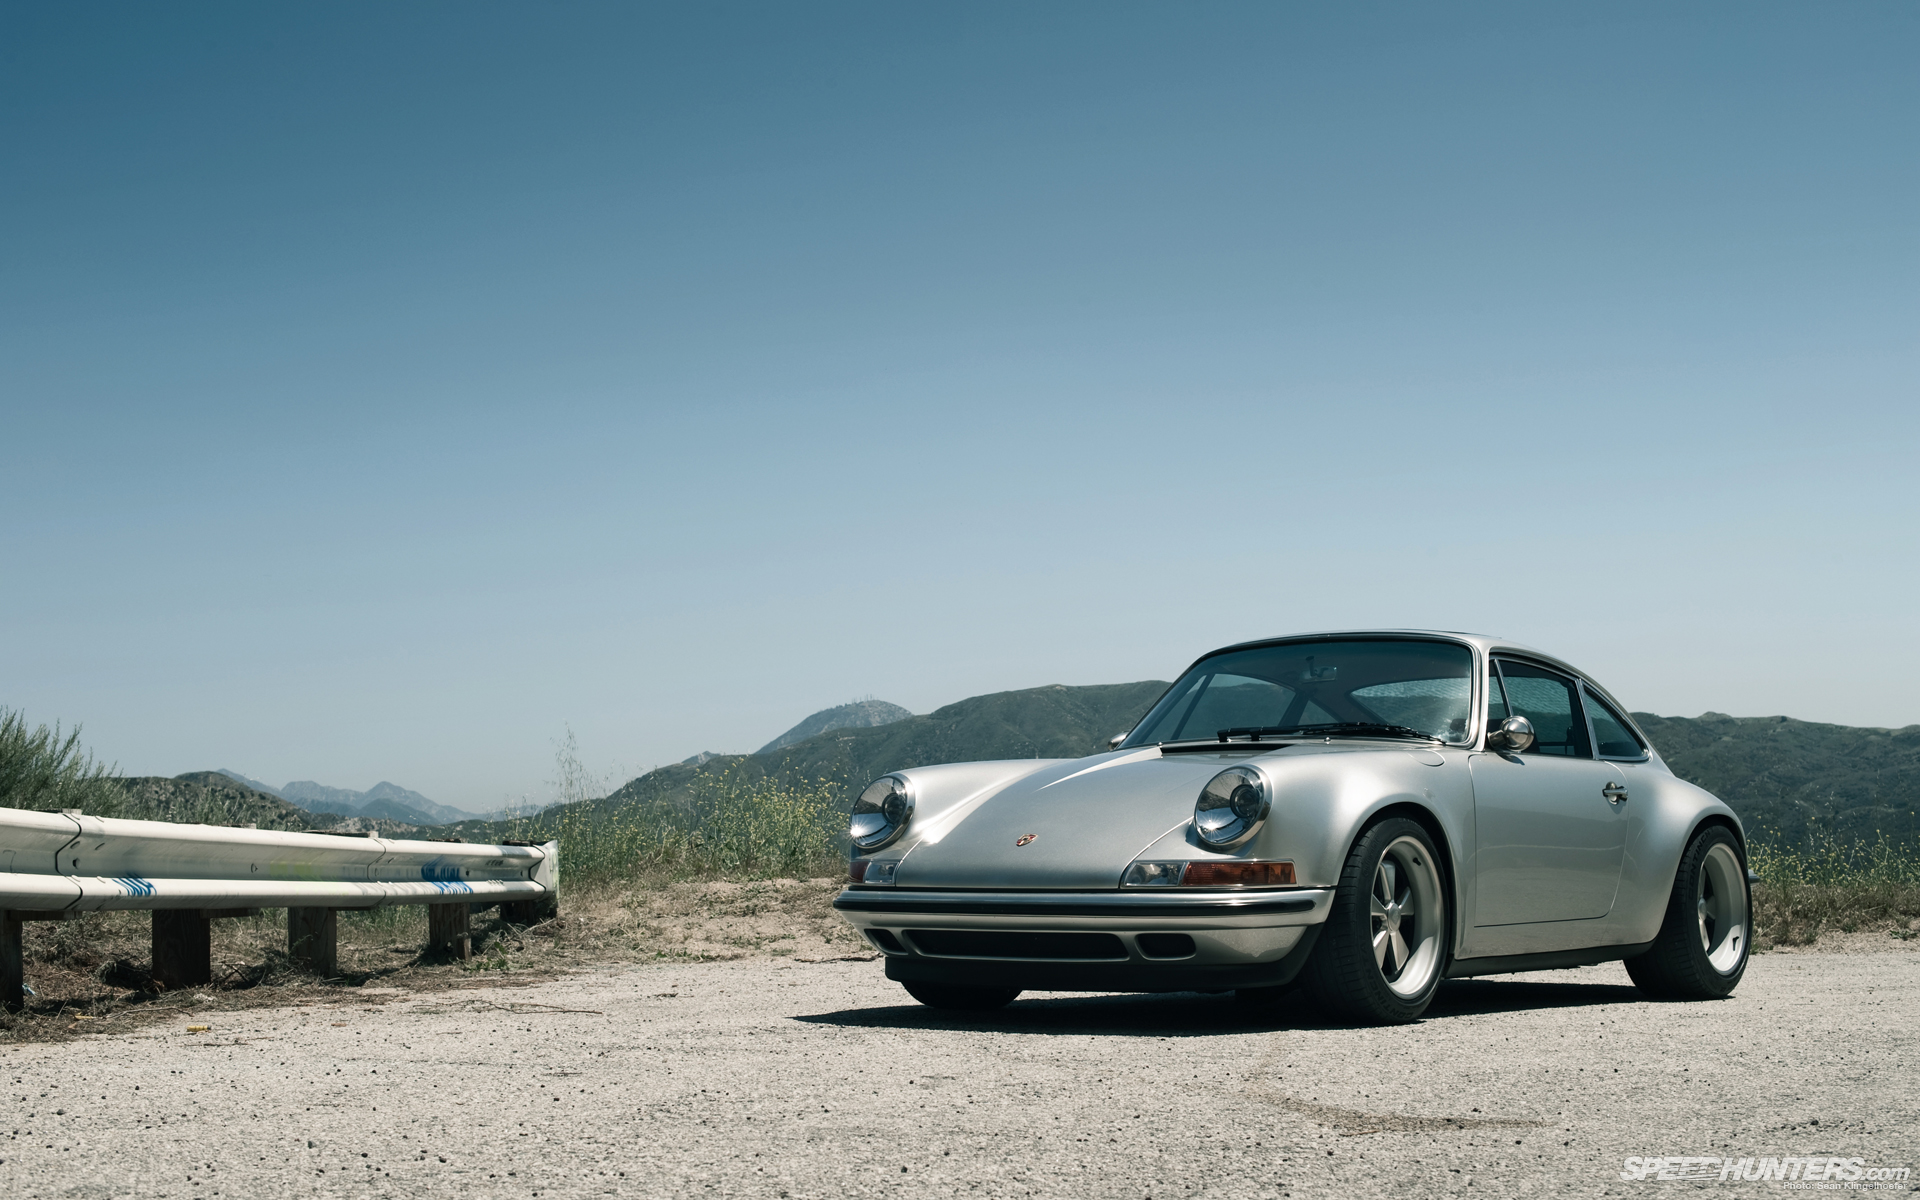 When Less Meets More The Ultimate 911 Speedhunters